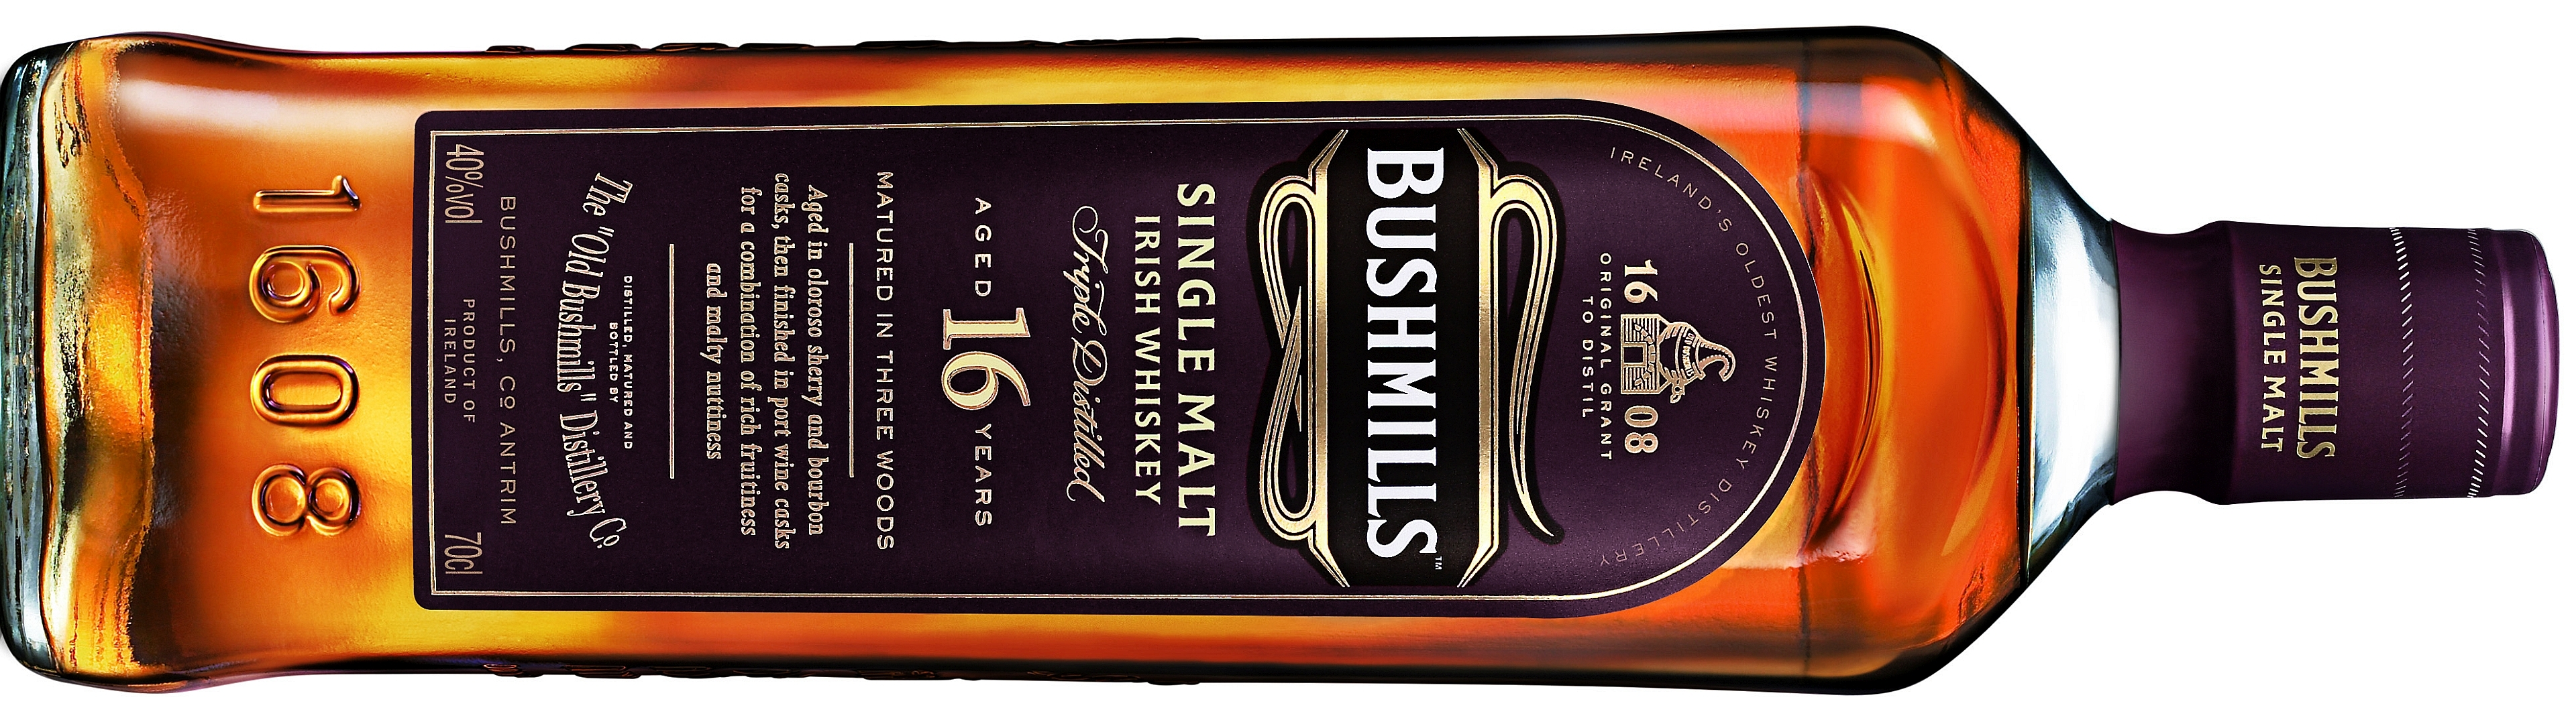 Bushmills-16-years-old-single-malt.jpg